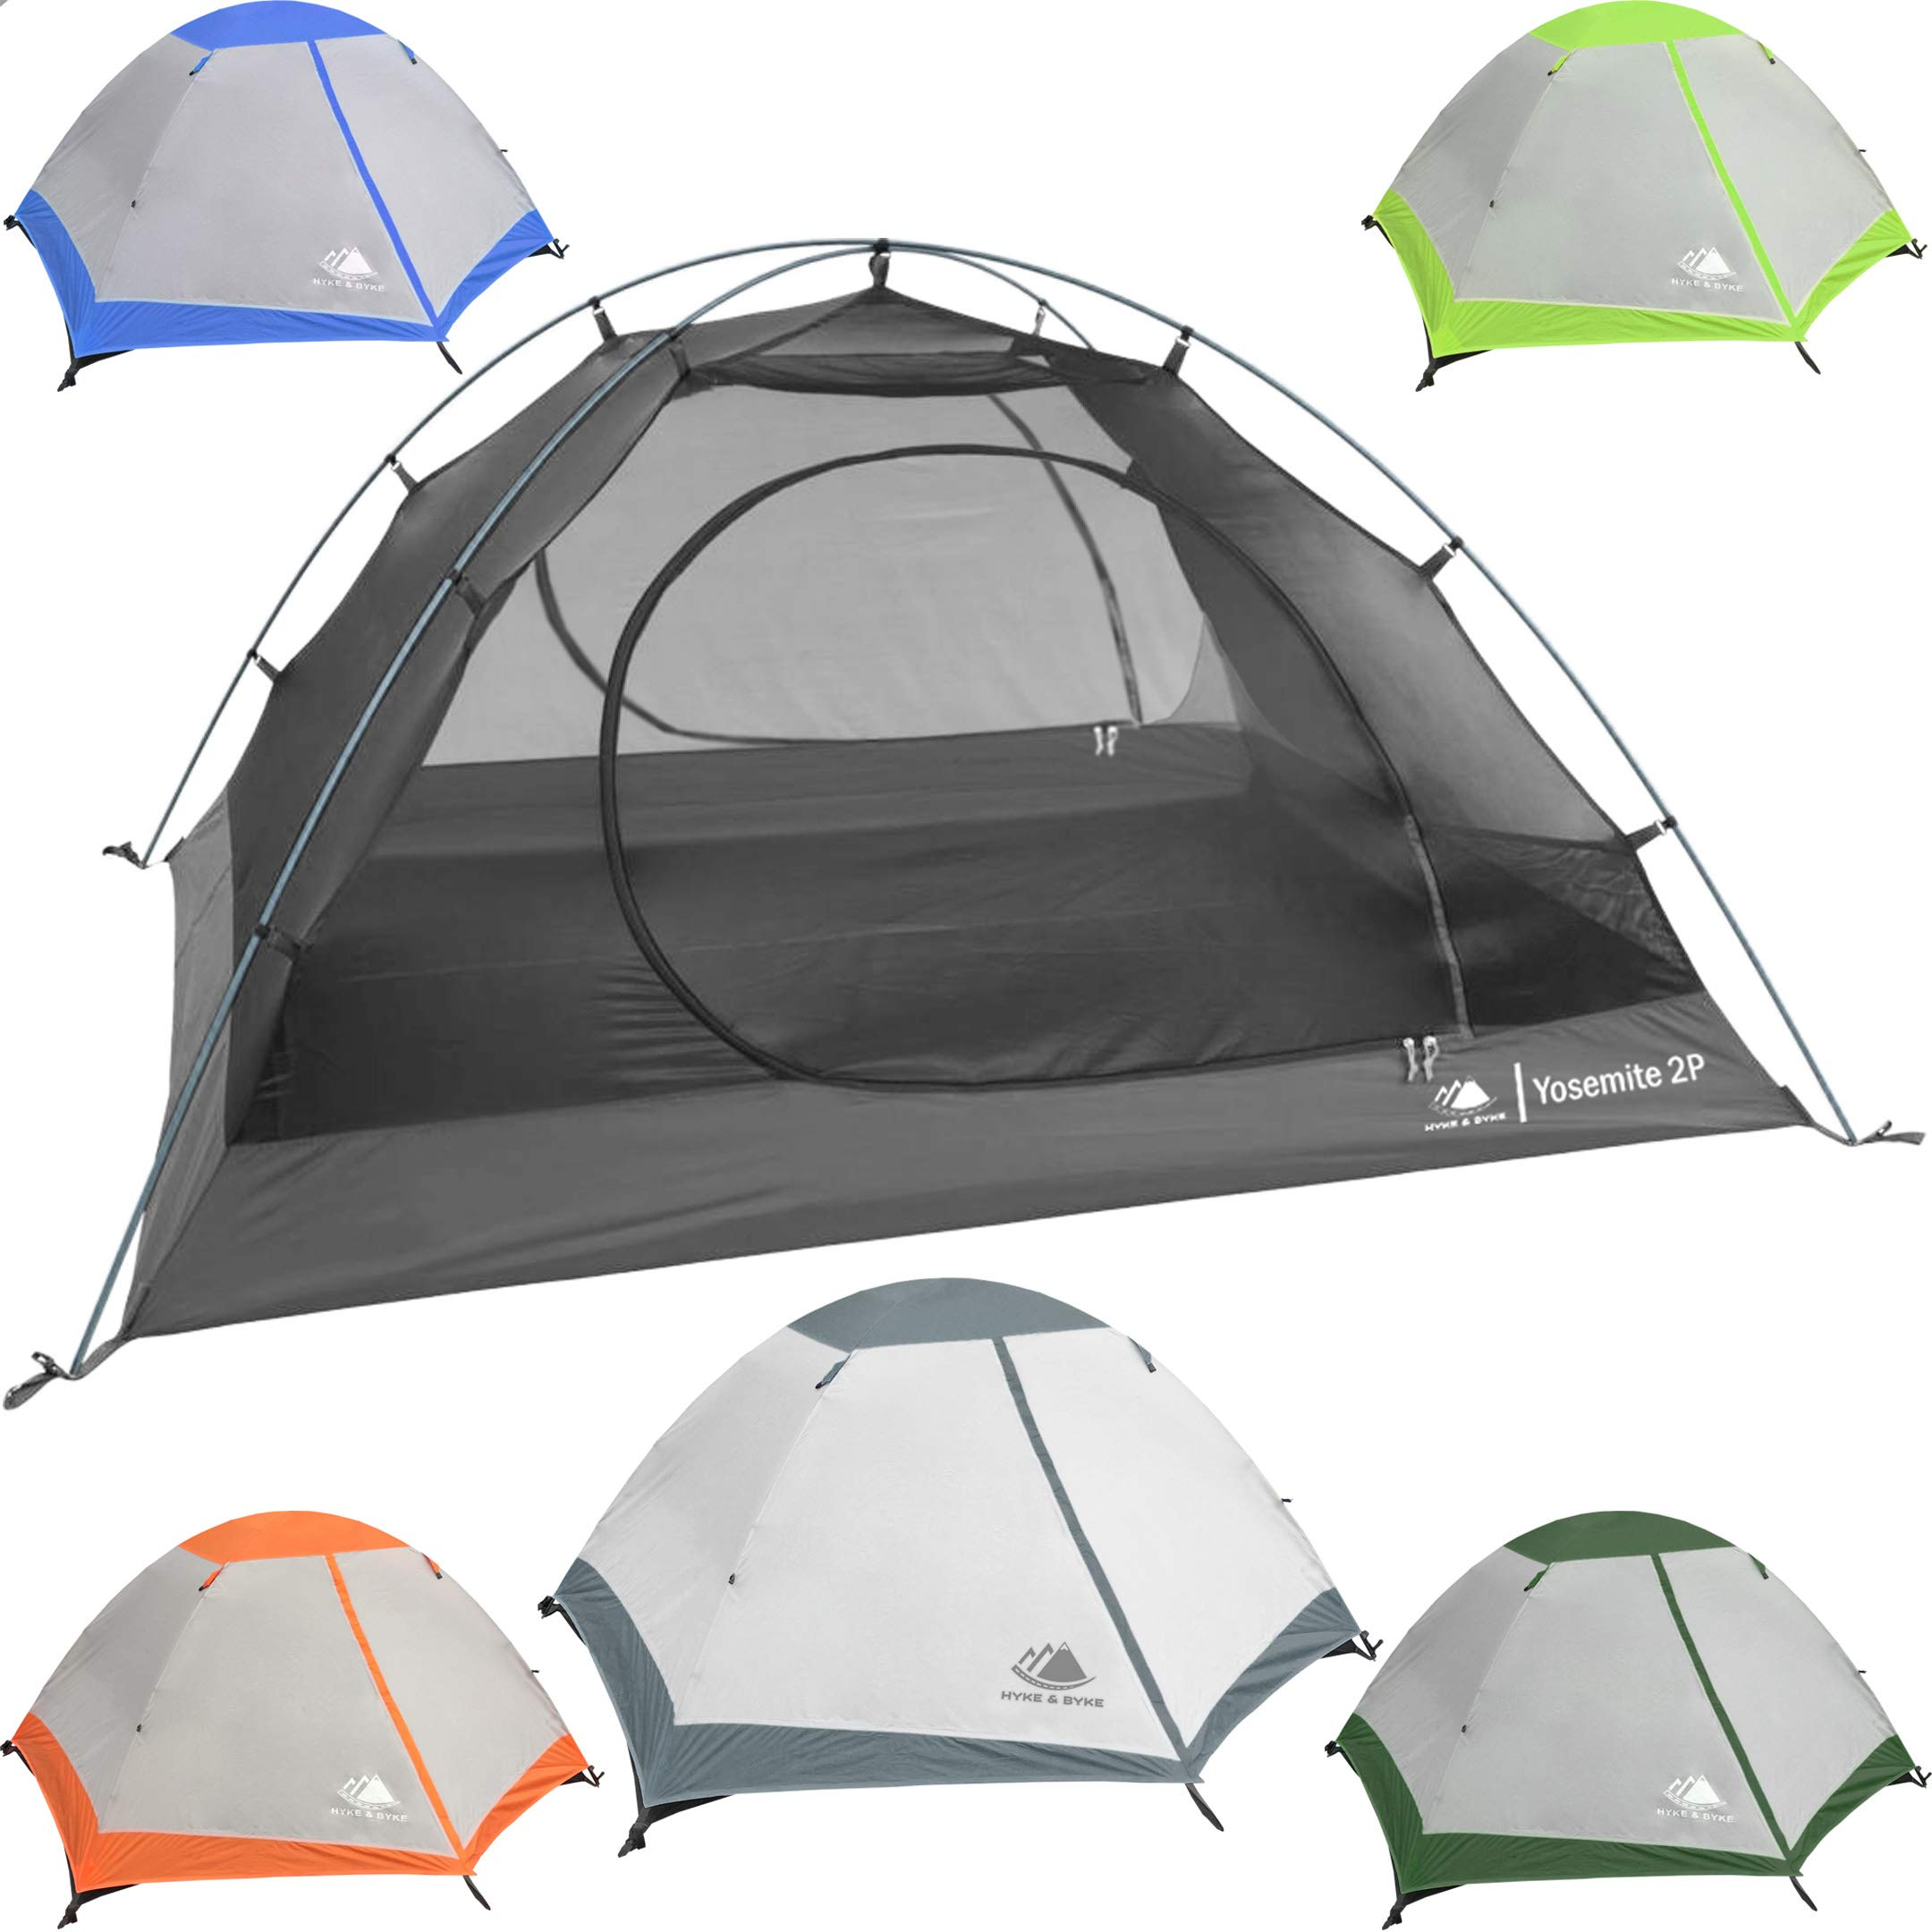 Hyke & Byke 2 Person Backpacking Tent with Footprint - Lightweight Yosemite Two Man 3 Season Ultralight, Waterproof, Ultra Compact 2p Freestanding Backpack Tents for Camping and Hiking (White)